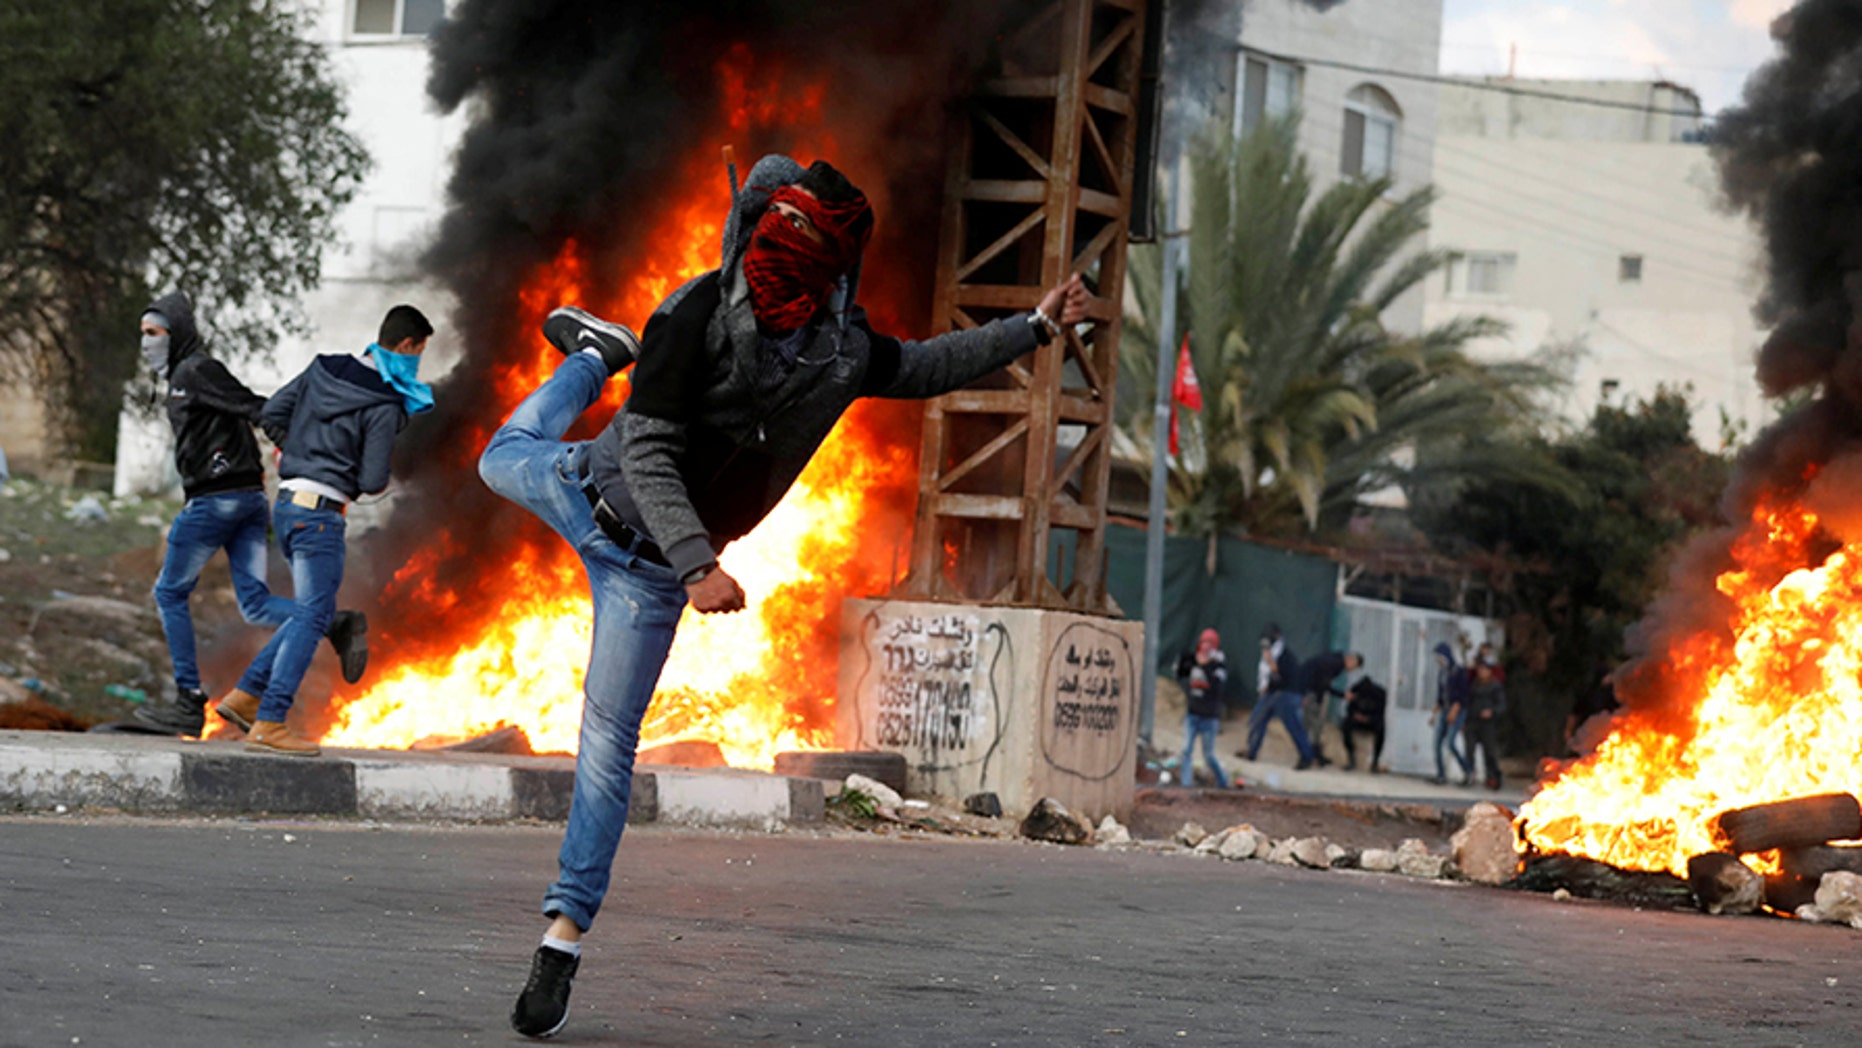 A Palestinian demonstrator hurls stones toward Israeli troops during clashes at a protest against U.S. President Donald Trump's decision to recognize Jerusalem as the capital of Israel, near the West Bank city of Nablus, December 29, 2017